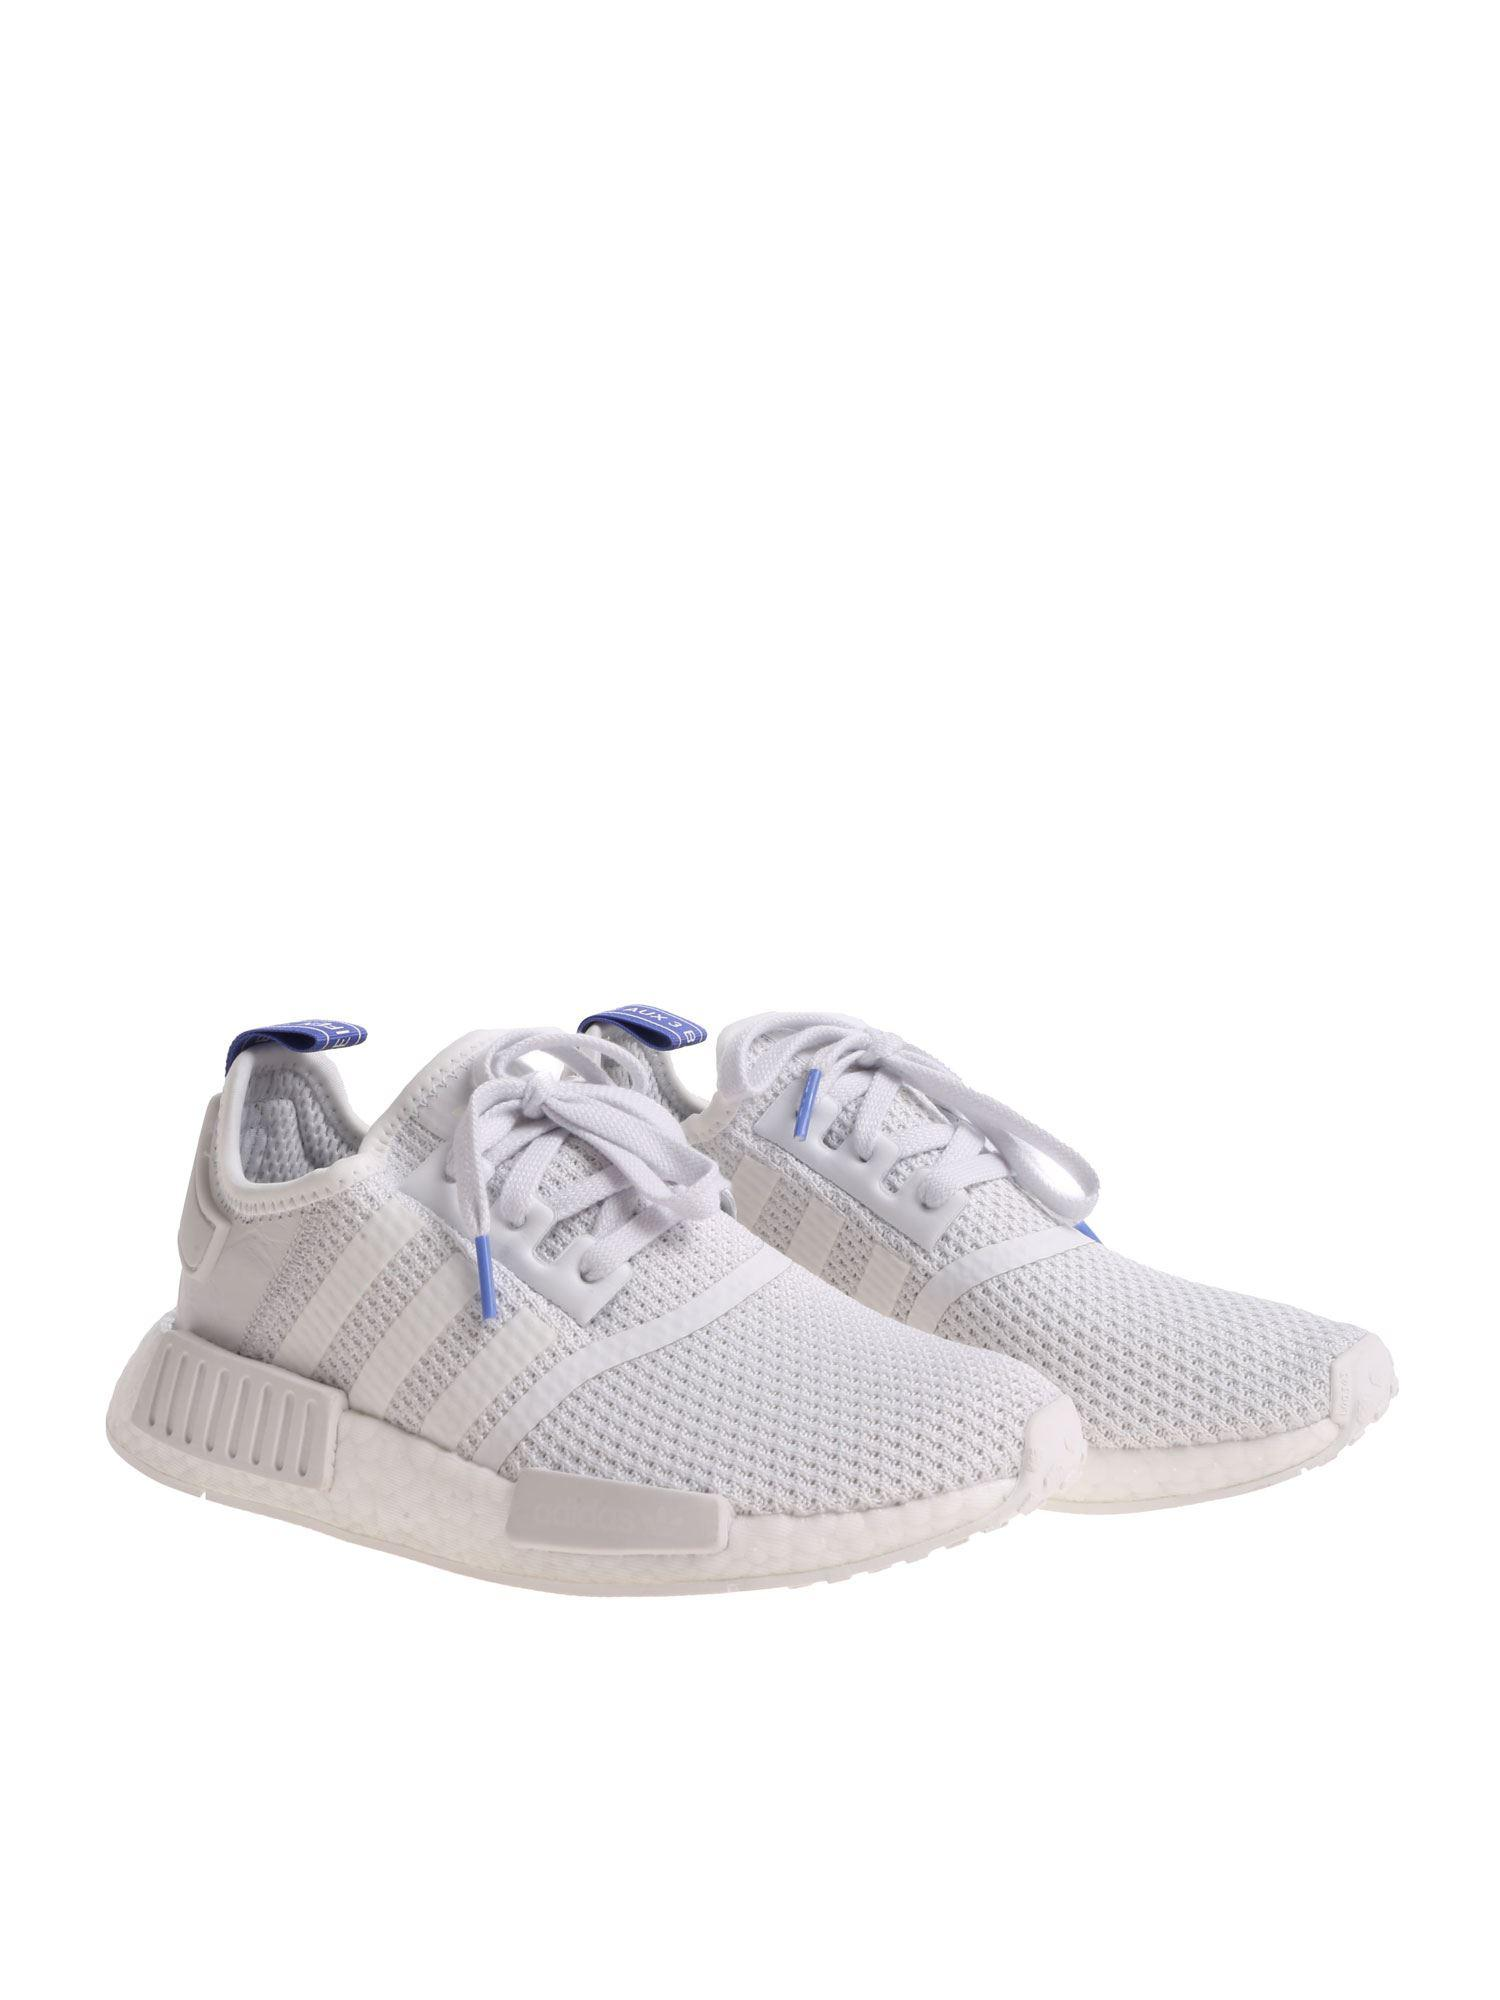 f570115f3 Adidas Originals Nmd r1 W White Sneakers in White - Lyst